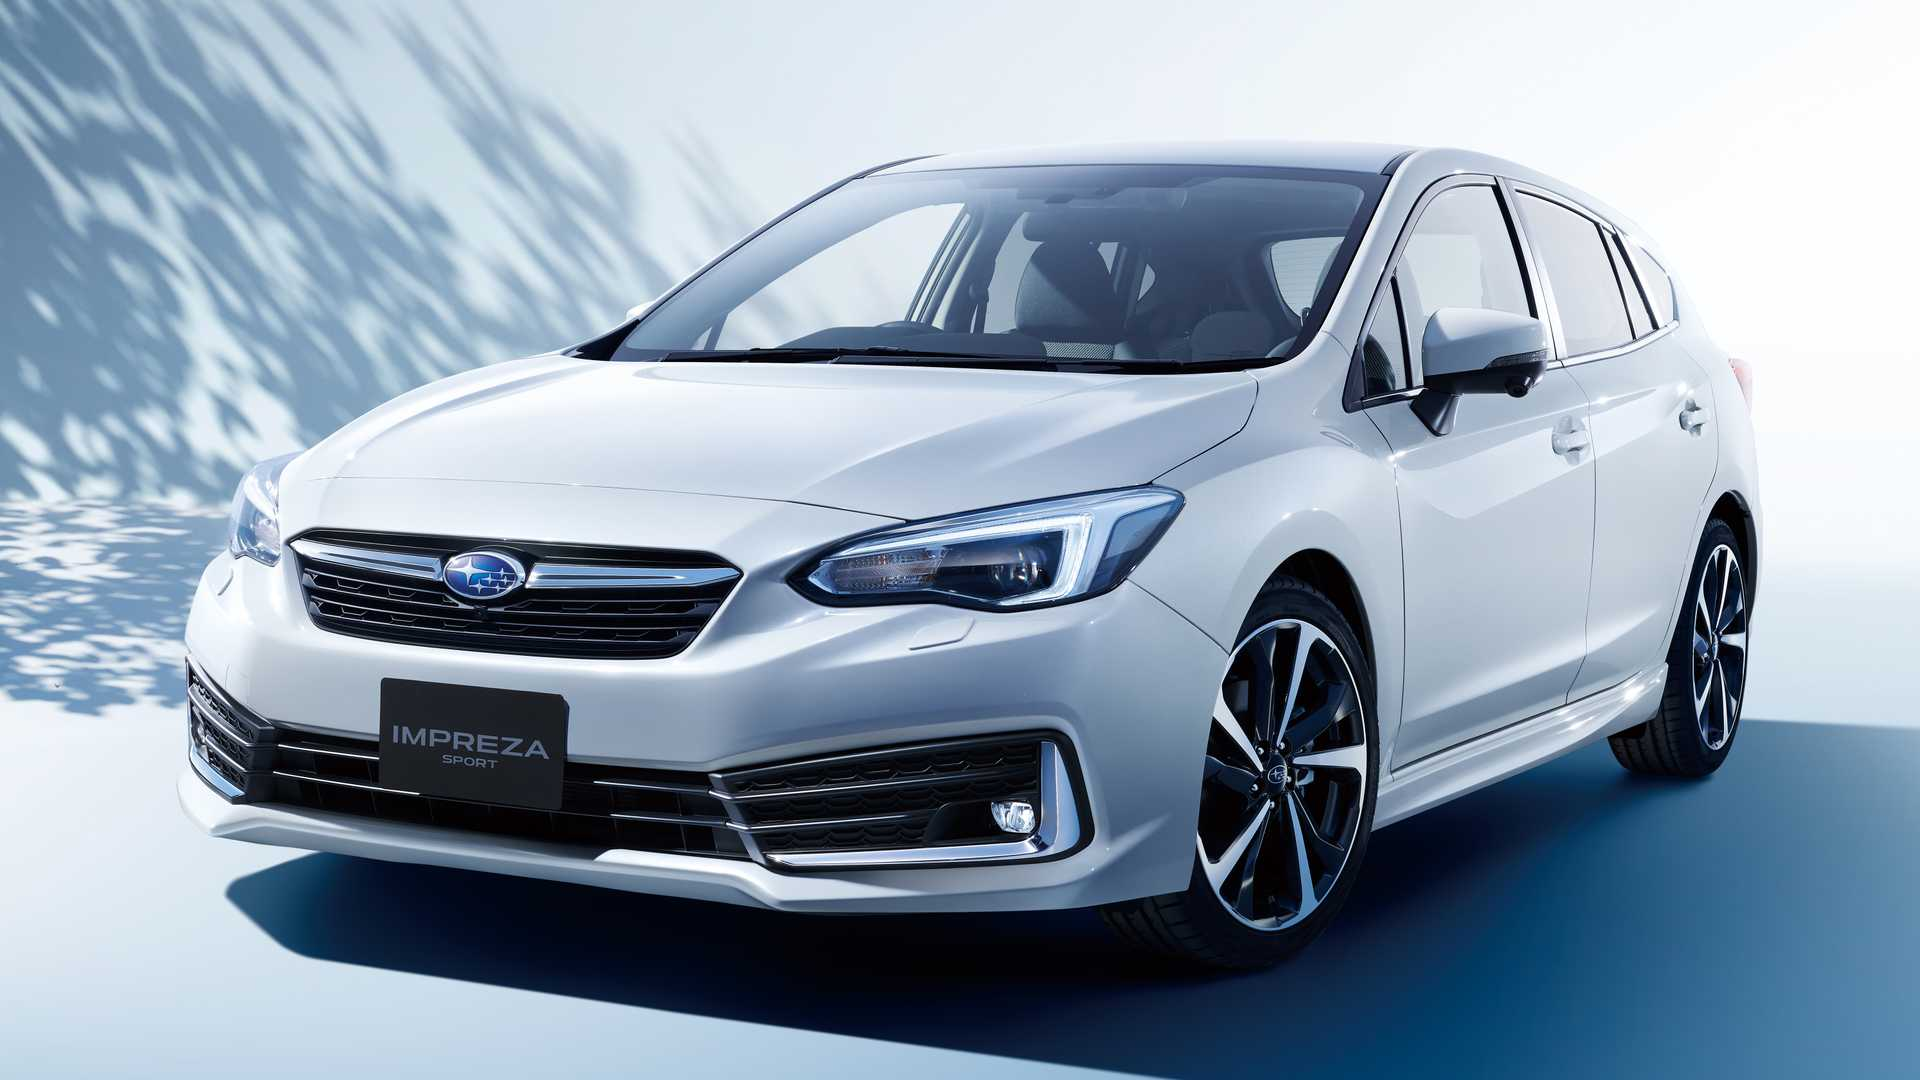 42 All New Subaru Wrx 2020 Redesign Price And Review